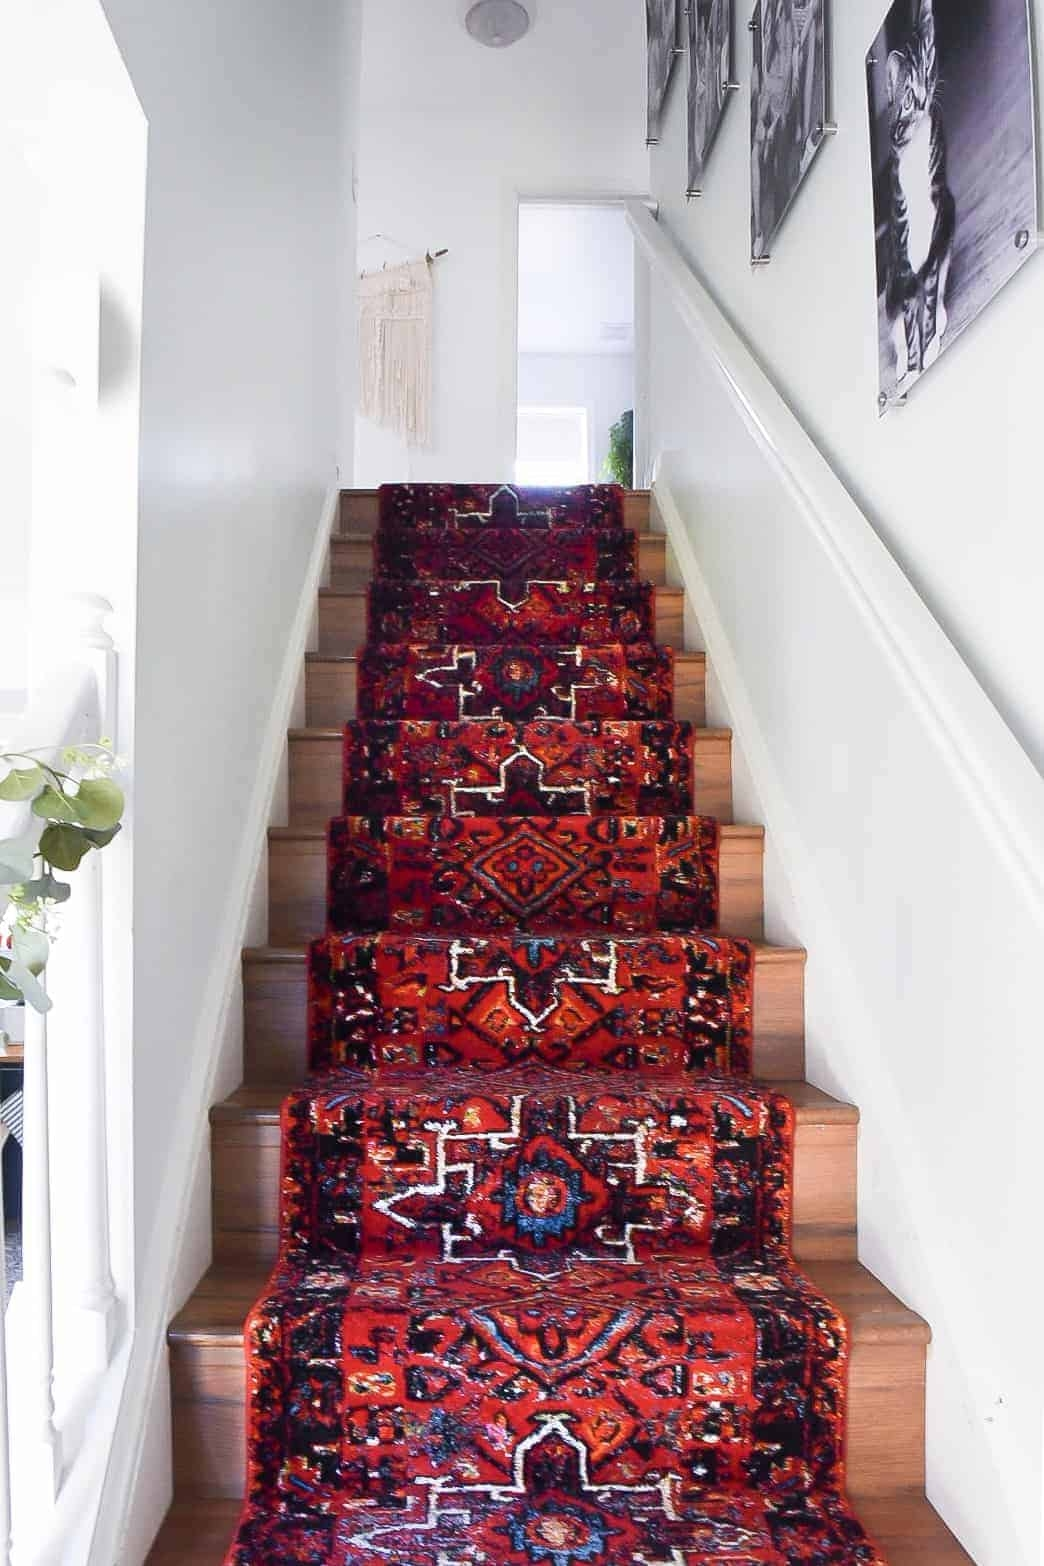 How To Install A Stair Runner Extra Long Runner Rug Place Of   Rug For Bottom Of Stairs   Stairs Floormat   Stair Runners   Flooring   Landing Mat   Rectangle